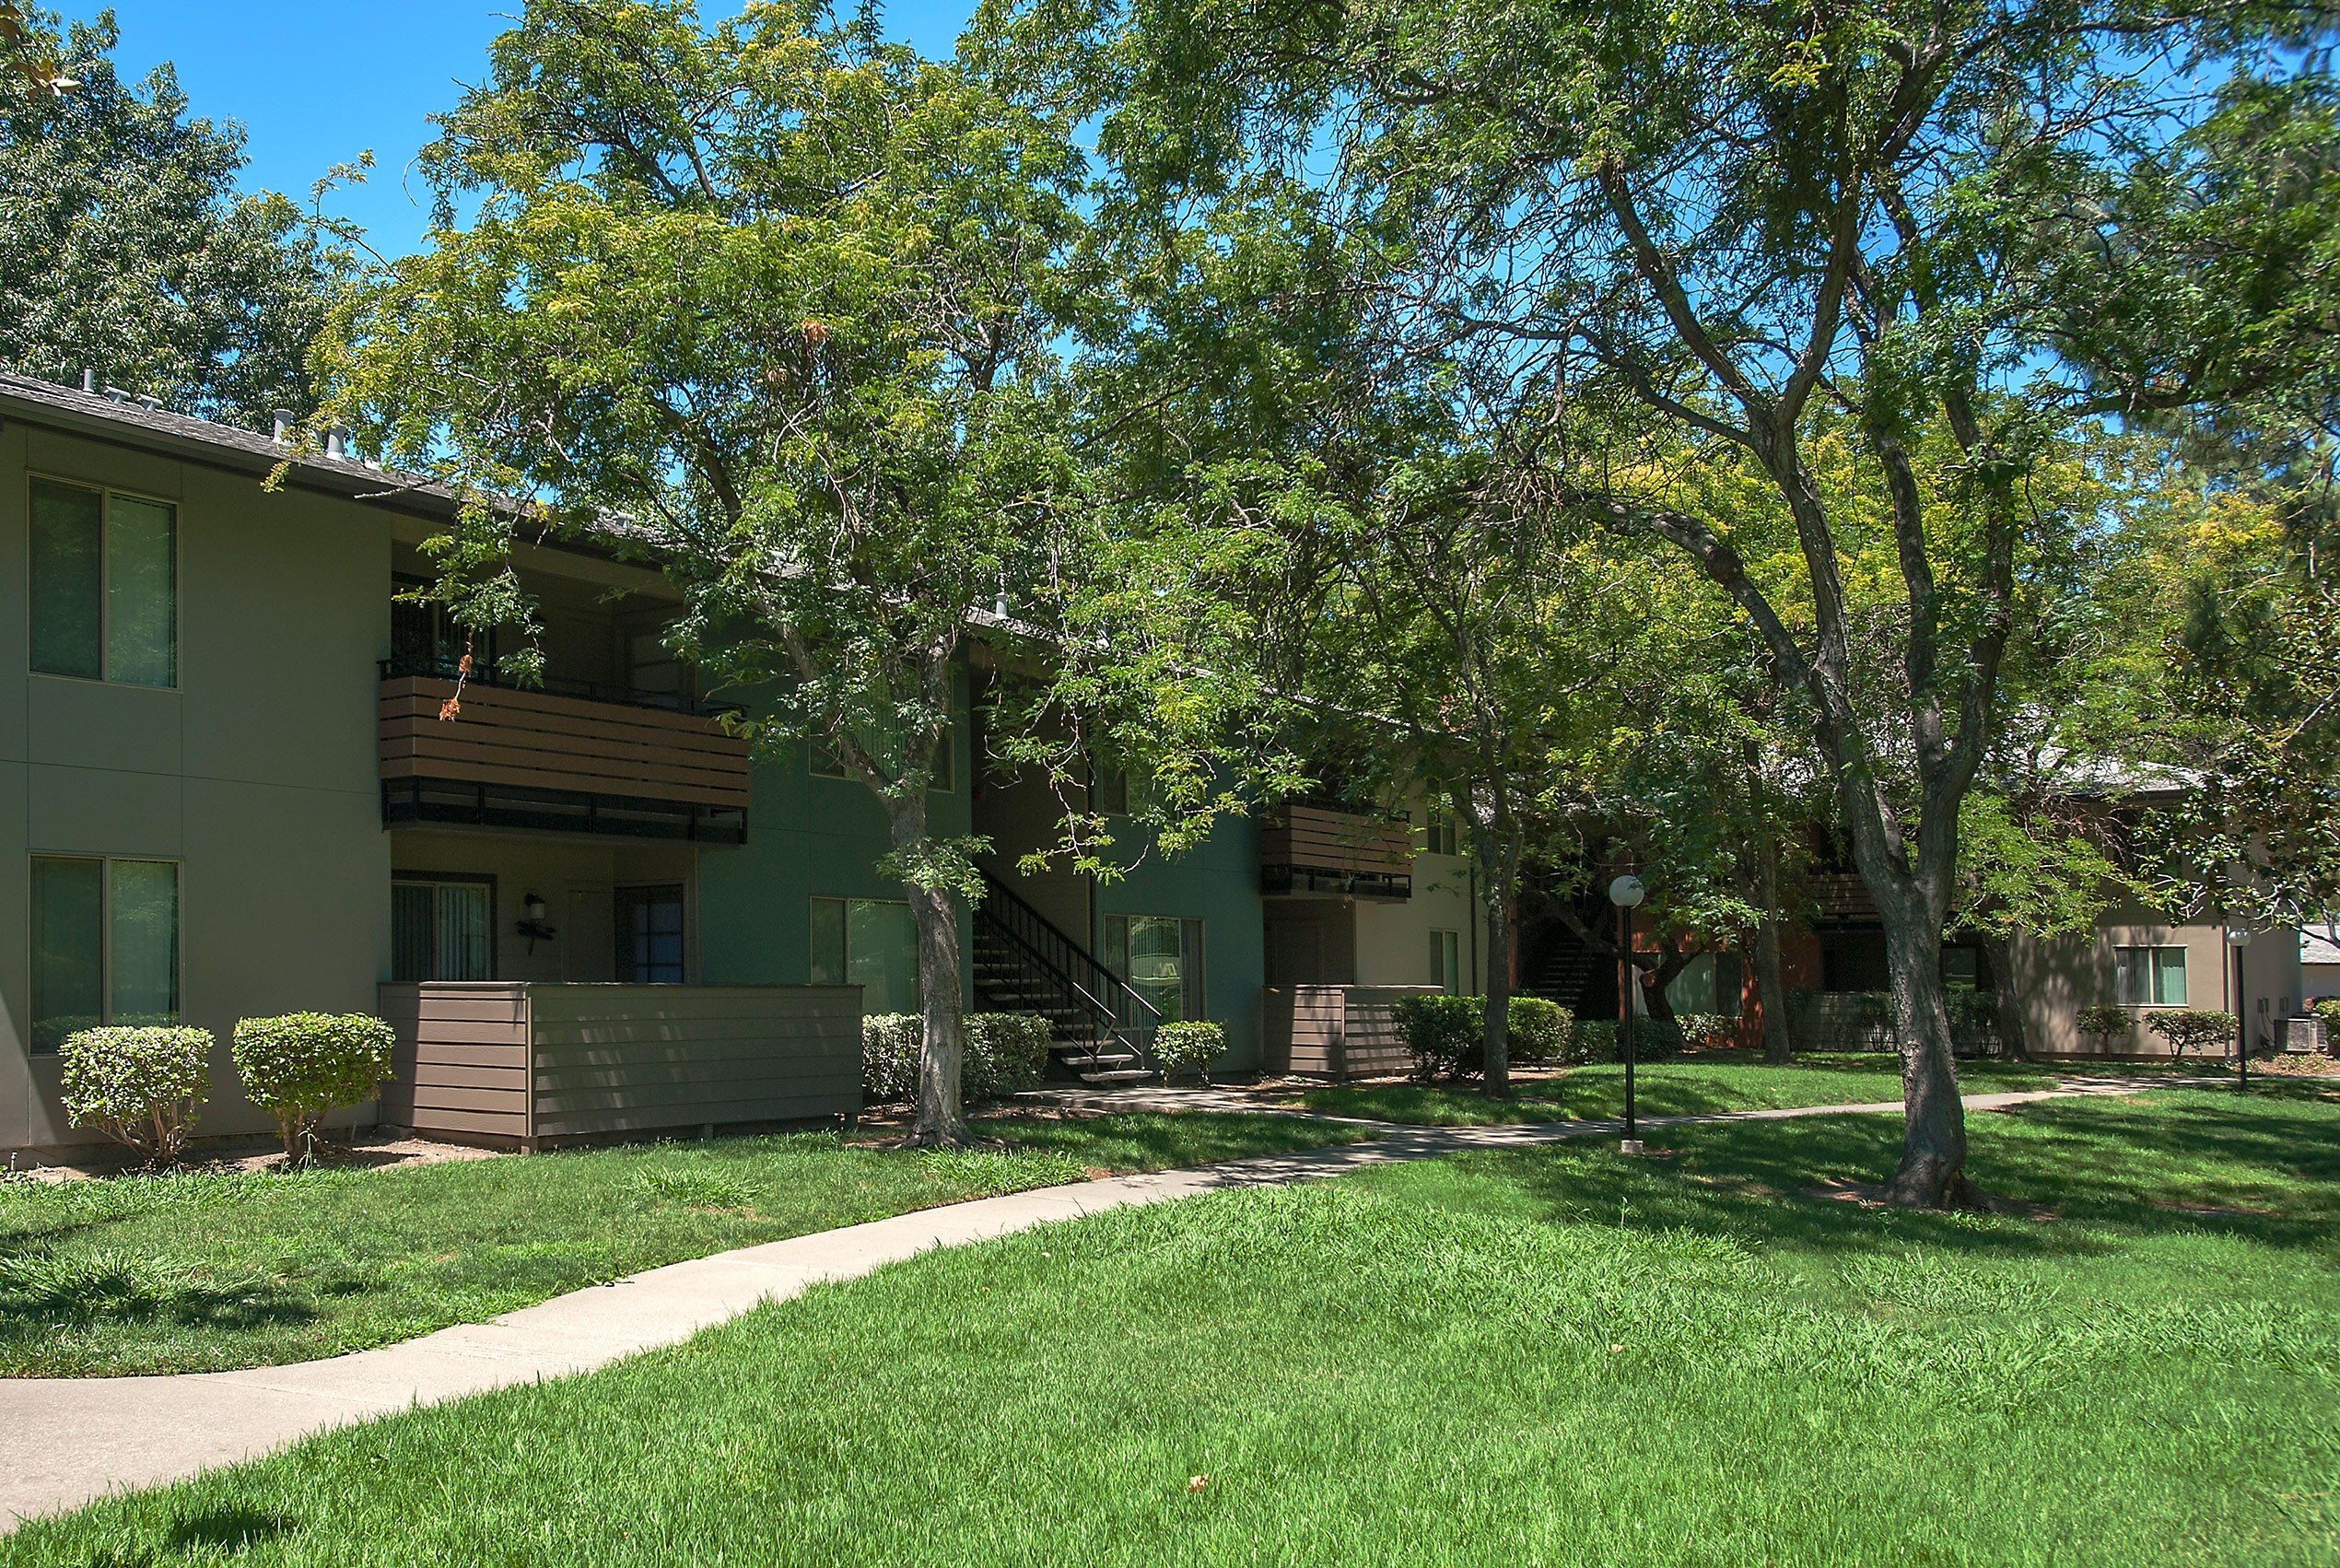 Permalink to Elegant Rooms for Rent Vacaville Ca Images